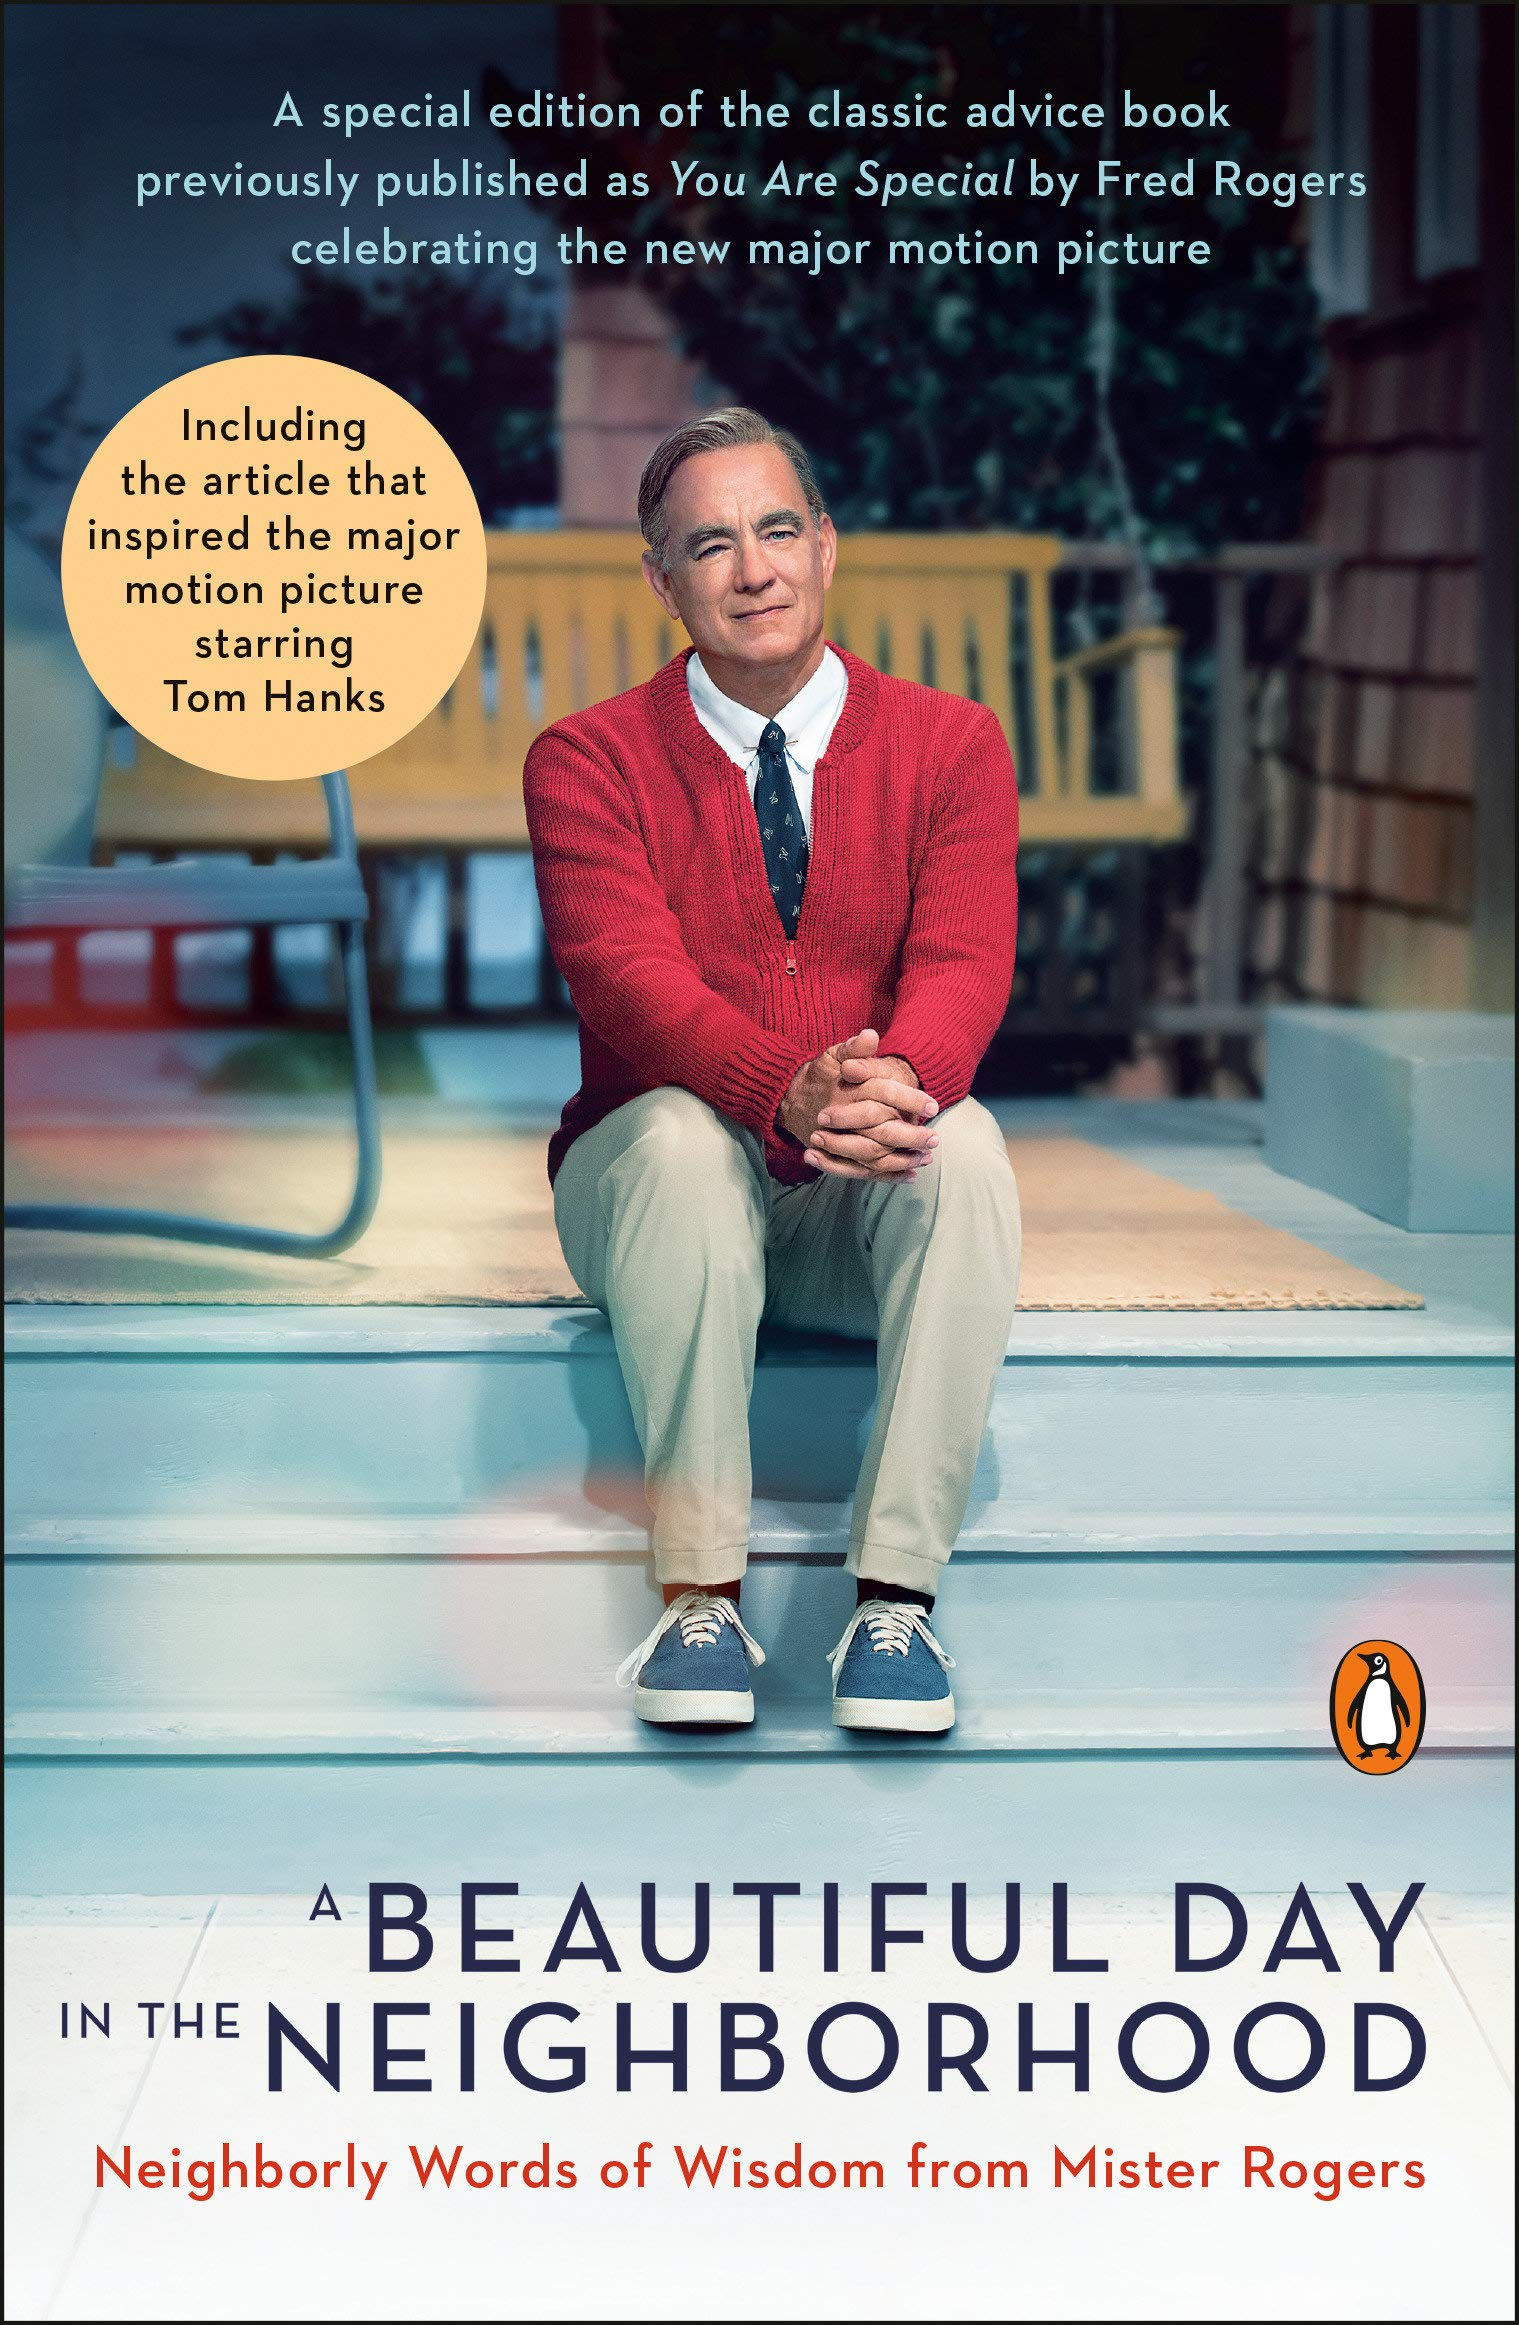 A Beautiful Day In The Neighborhood Movie Tie In Neighborly Words Of Wisdom From Mister Rogers Rogers Fred Junod Tom 9780143135388 Amazon Com Books